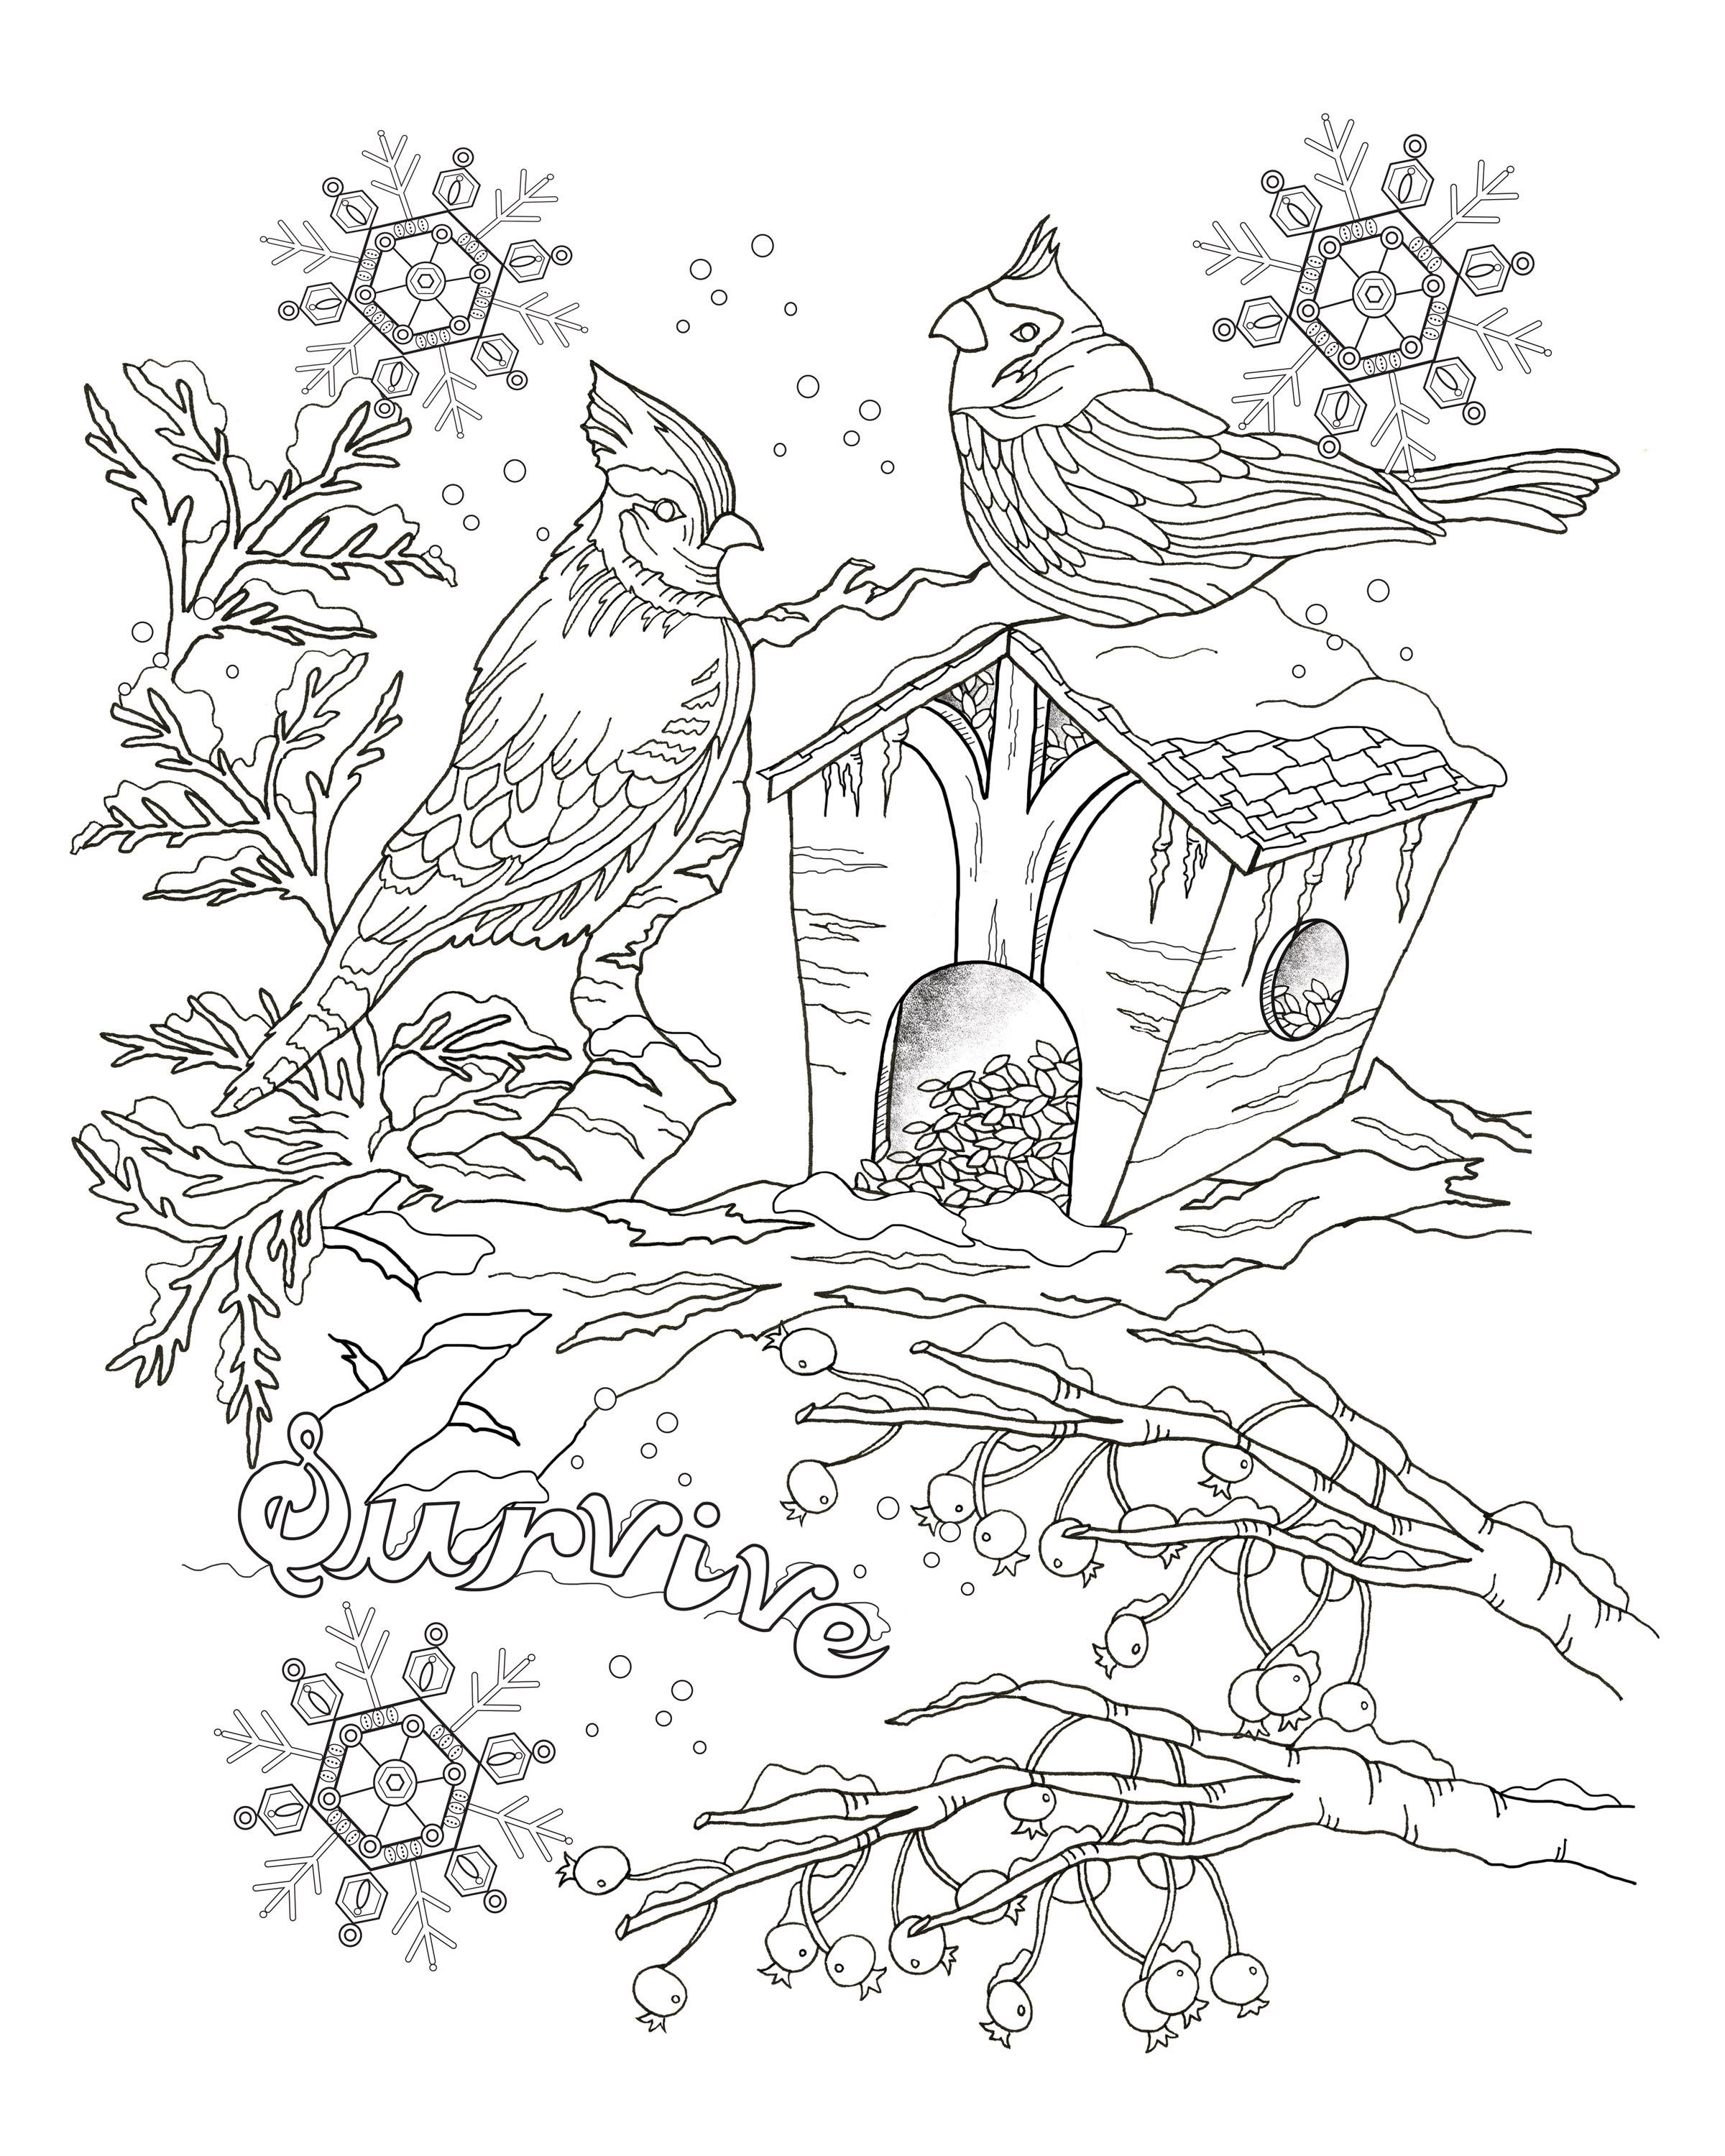 Cover and sample pages of drawings for an adult coloring book